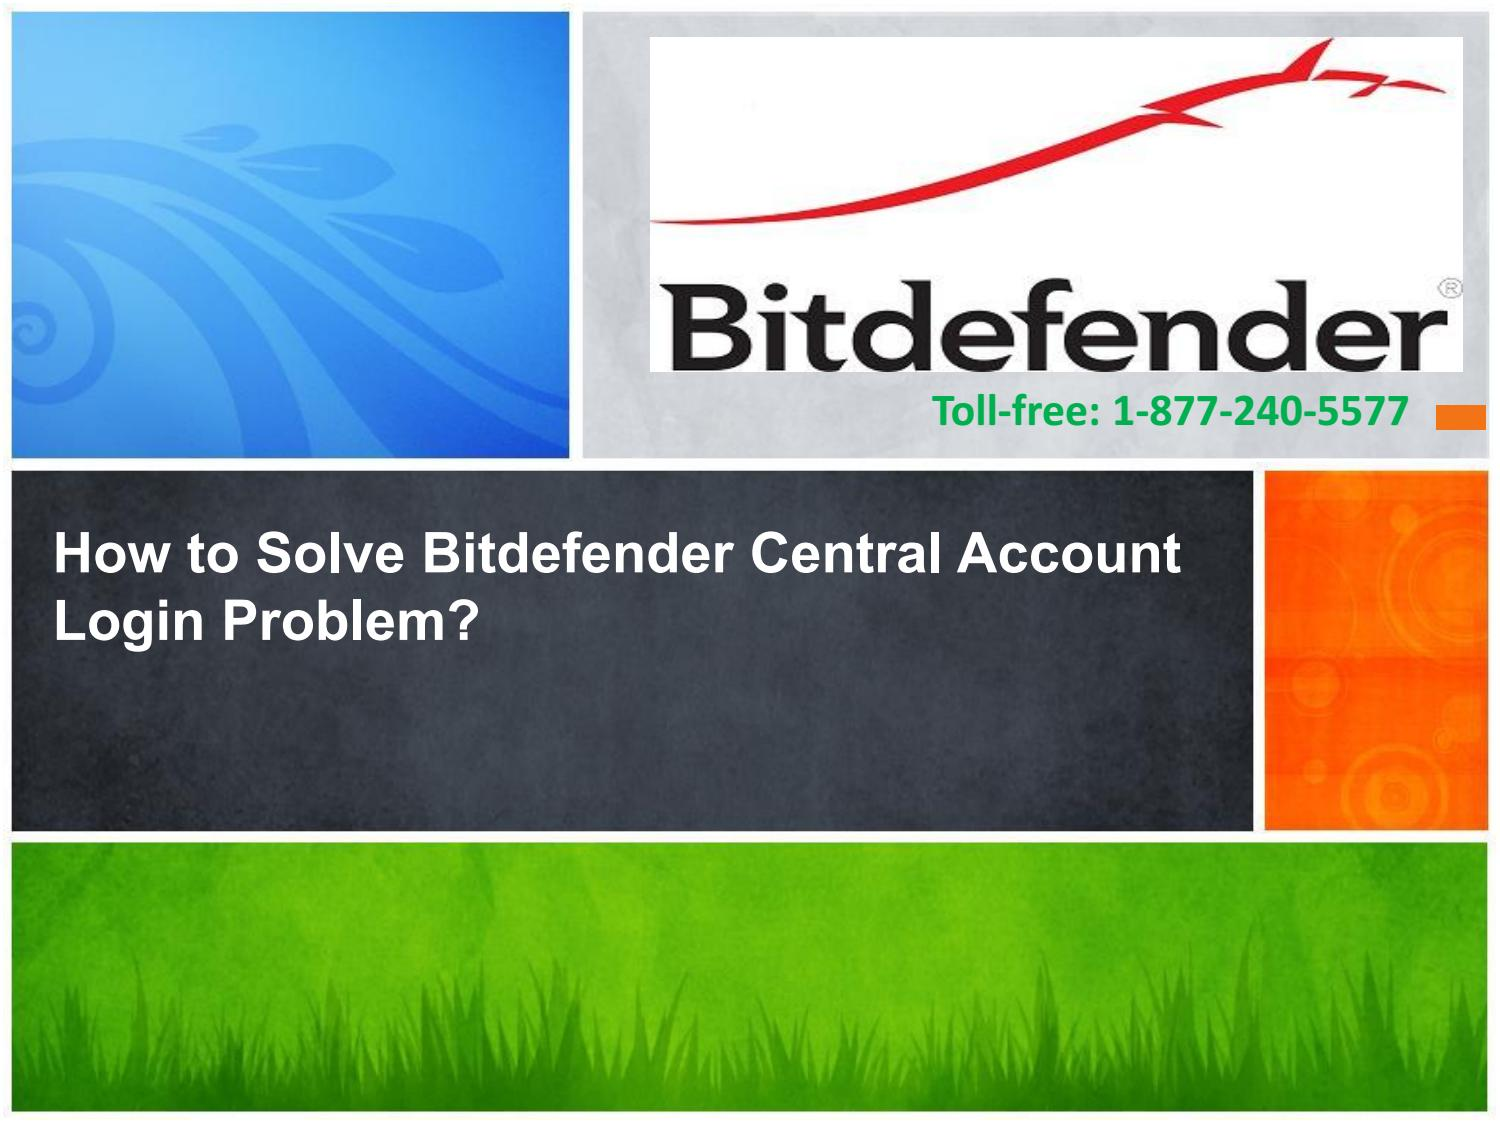 How to Solve Bitdefender Central Account Login Problem by